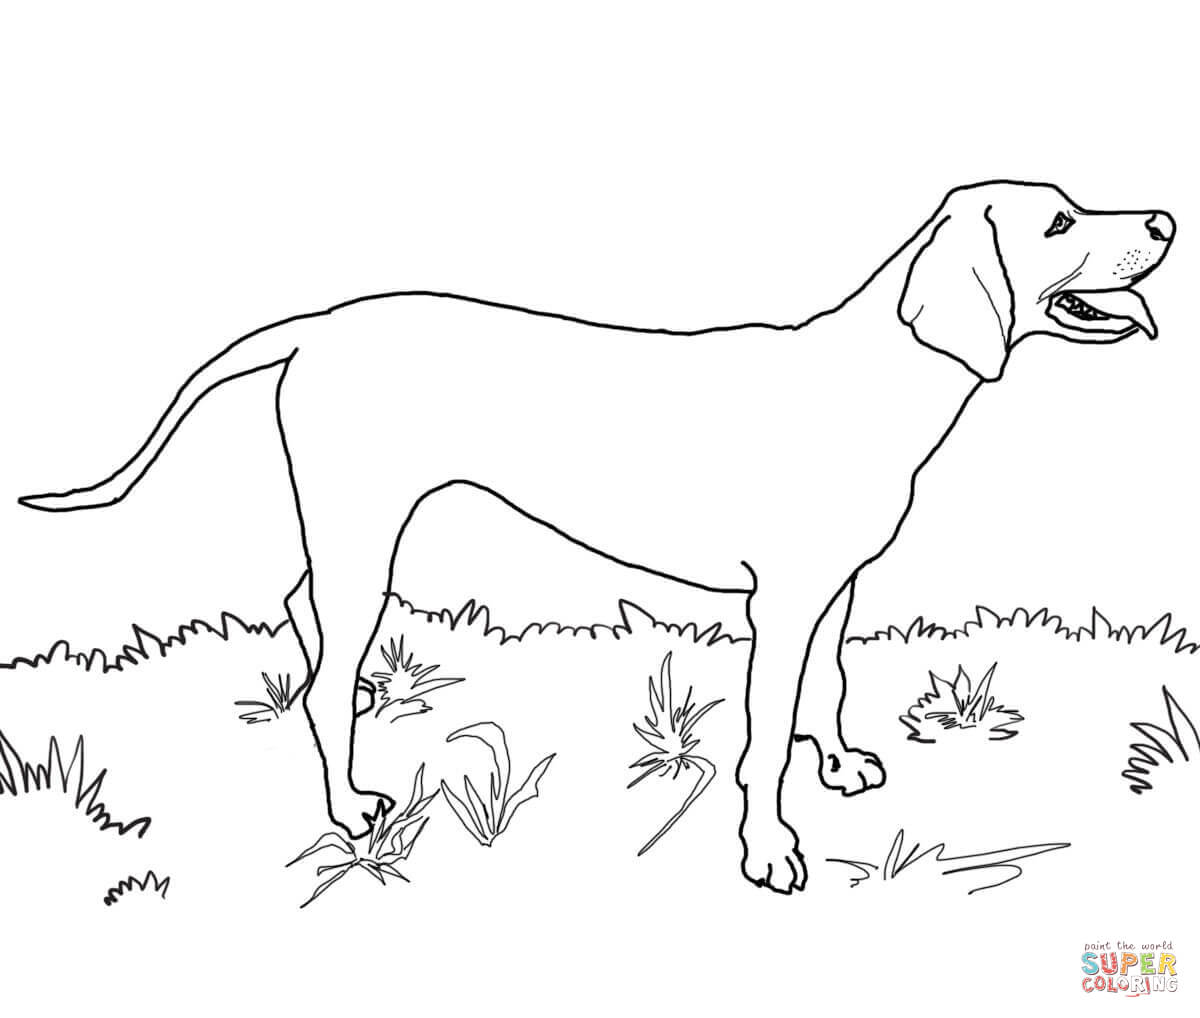 hound dog coloring pages coon dog coloring pages at getdrawings free download dog pages hound coloring